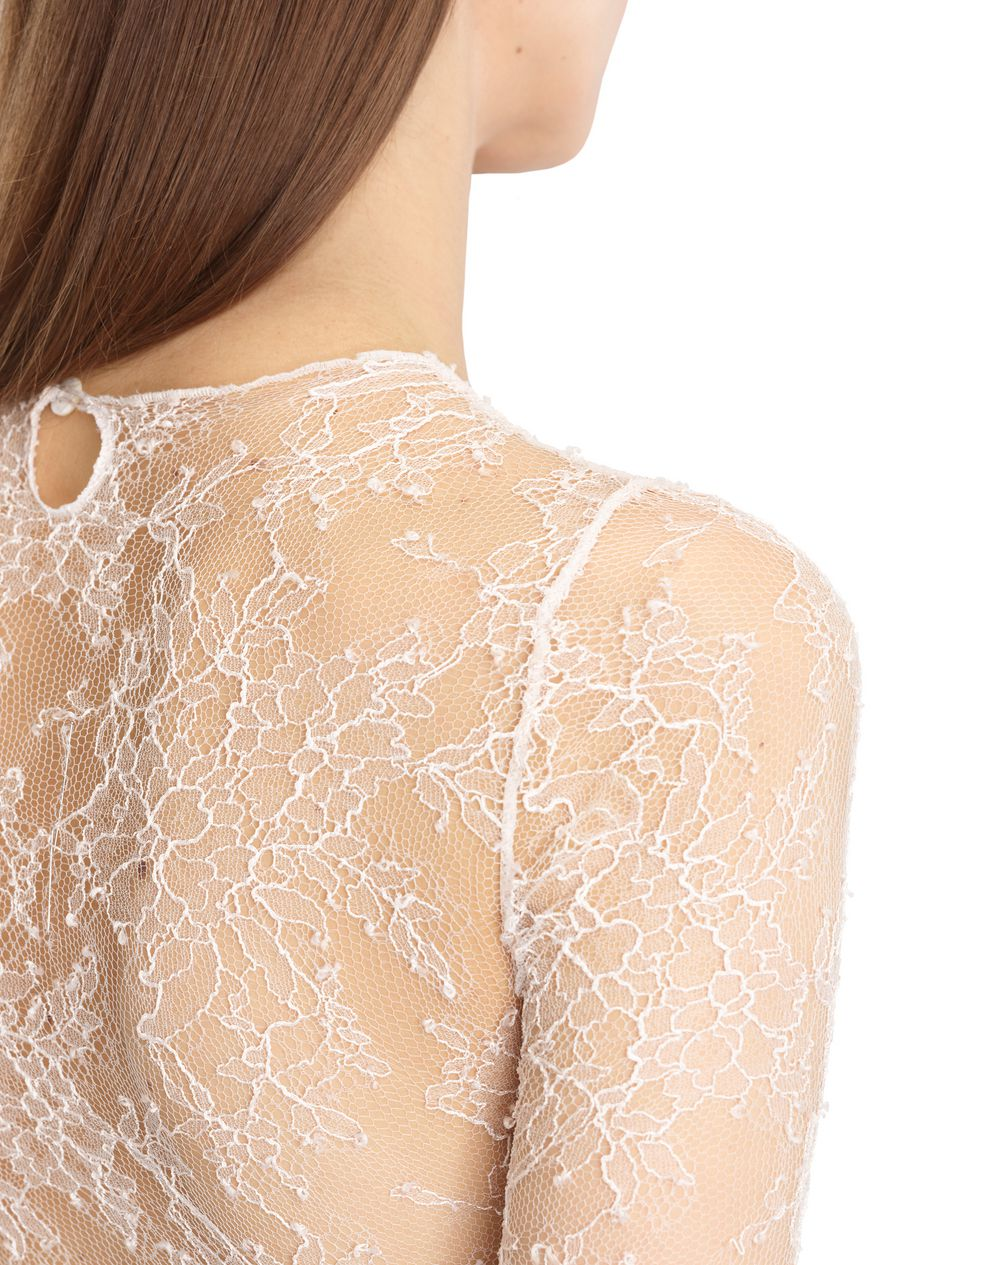 CHANTILLY LACE LEOTARD - Lanvin